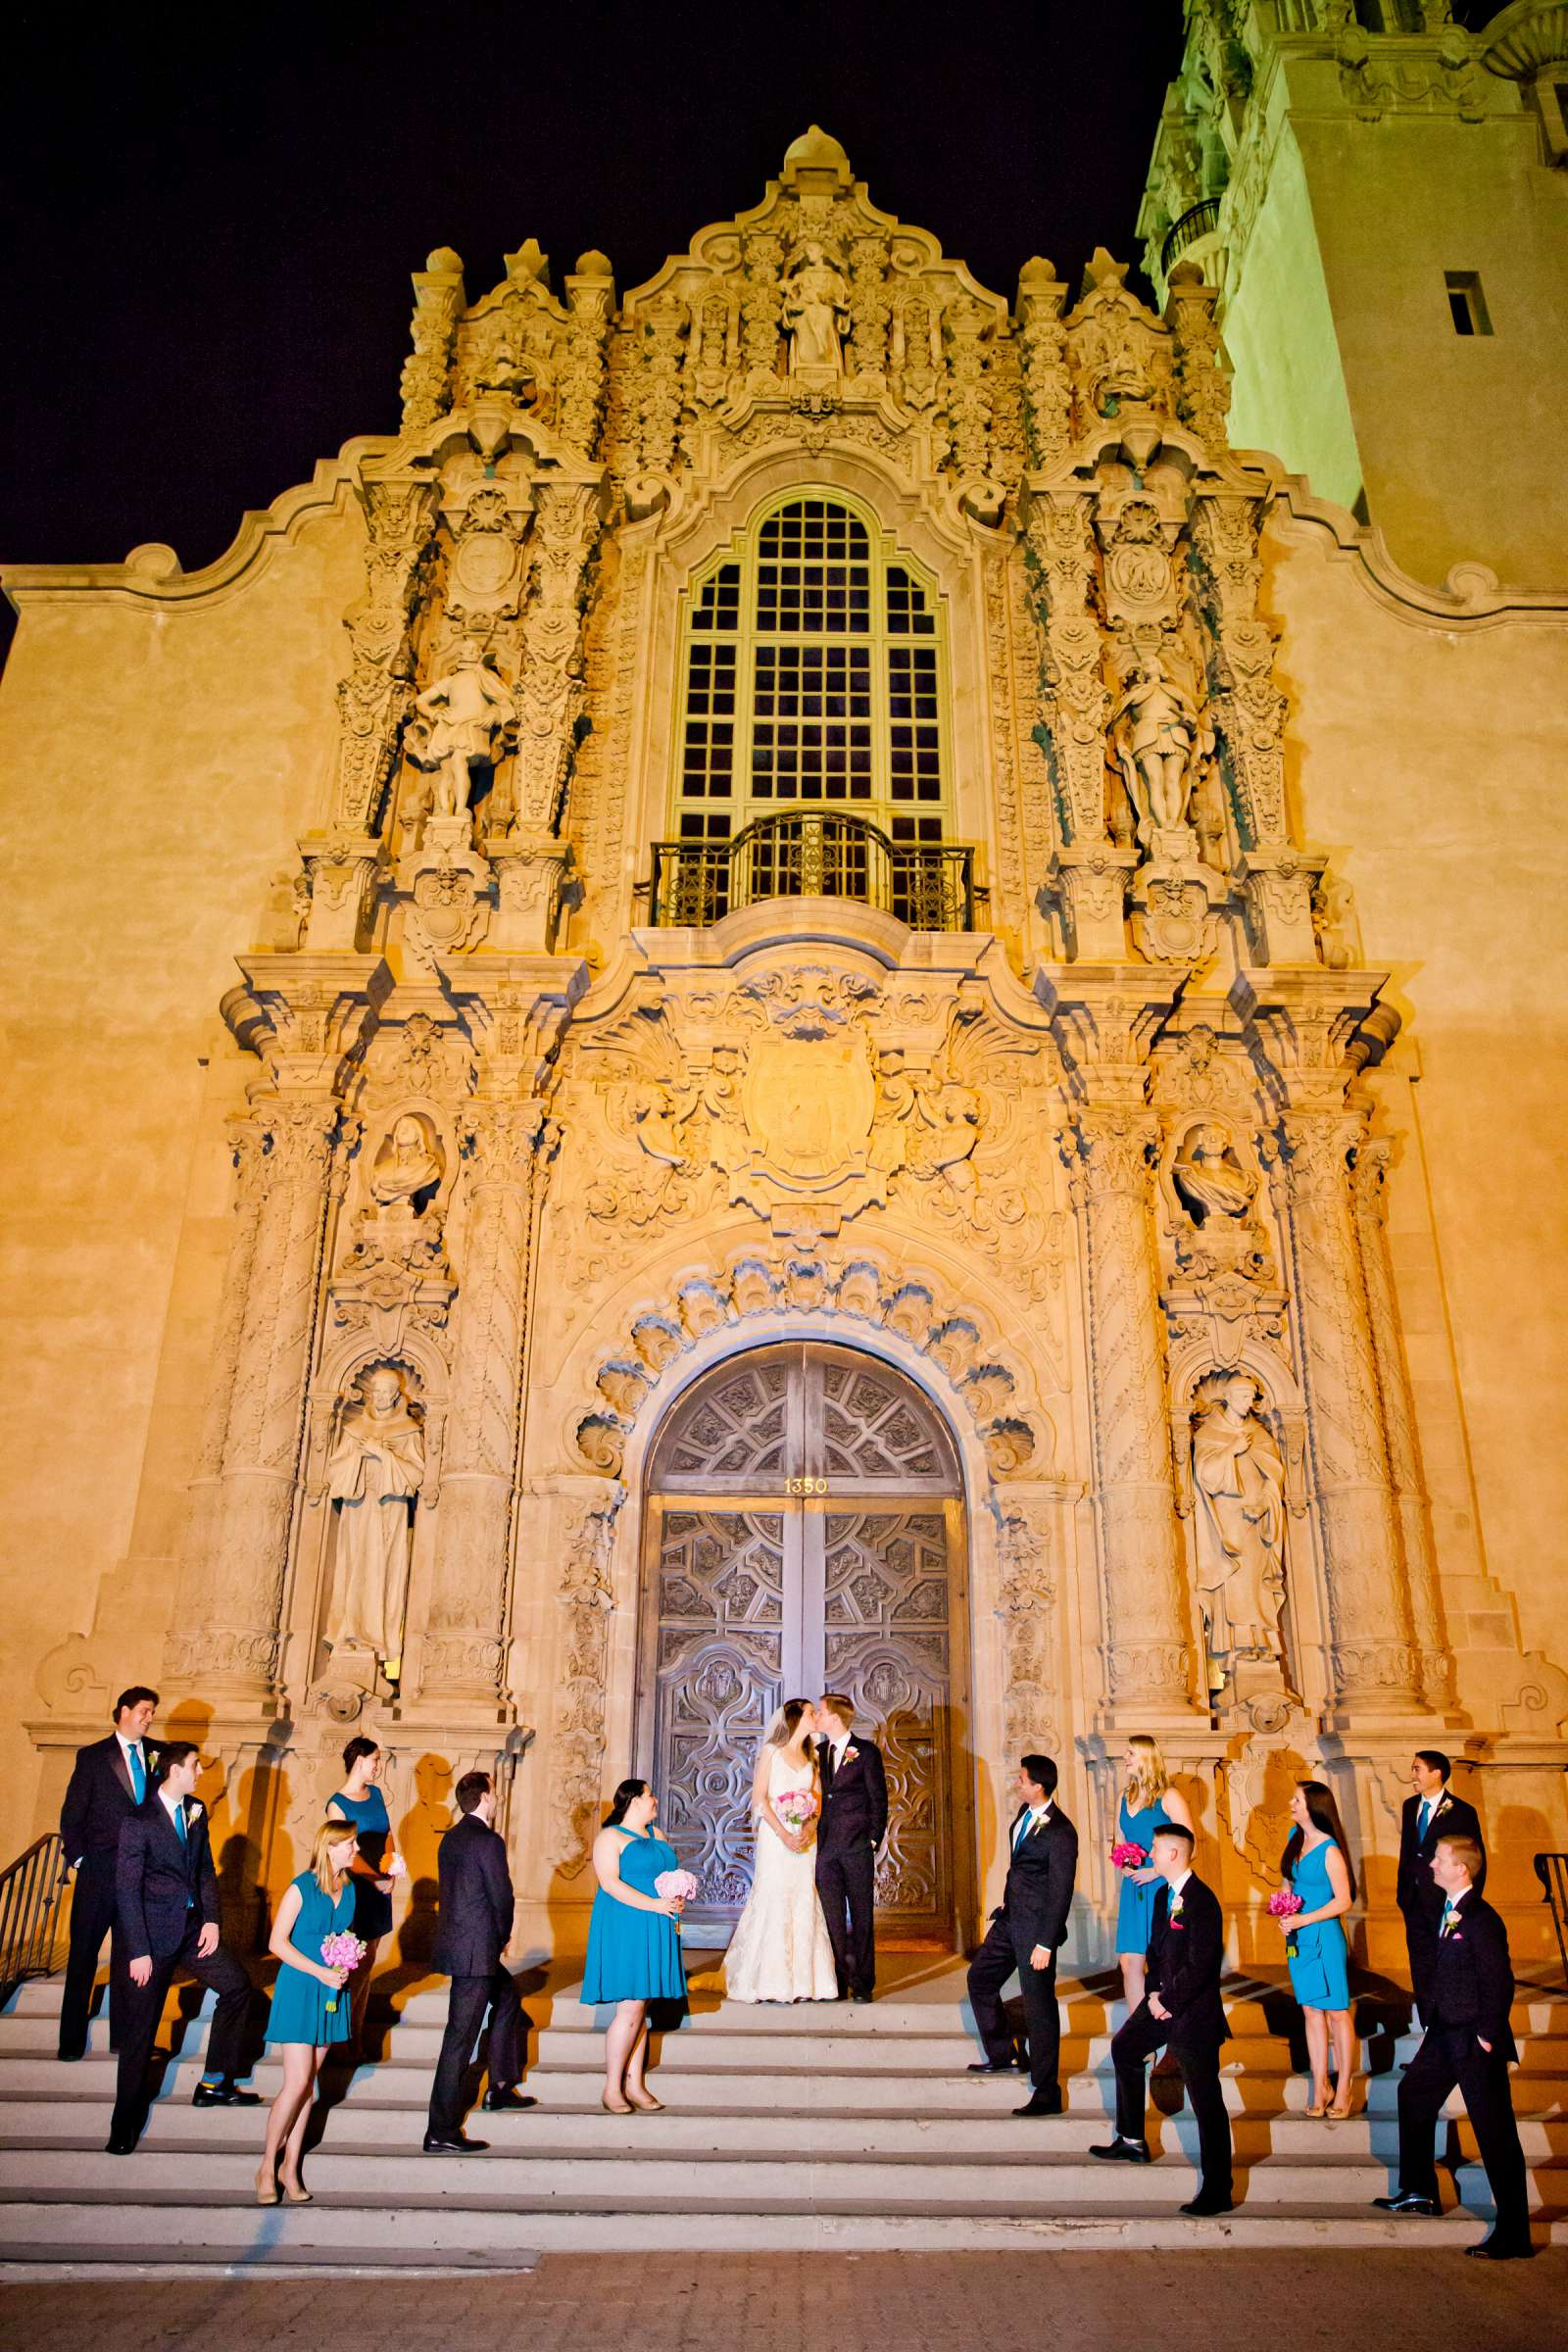 The Prado Wedding coordinated by First Comes Love Weddings & Events, Erin and Peter Wedding Photo #7 by True Photography